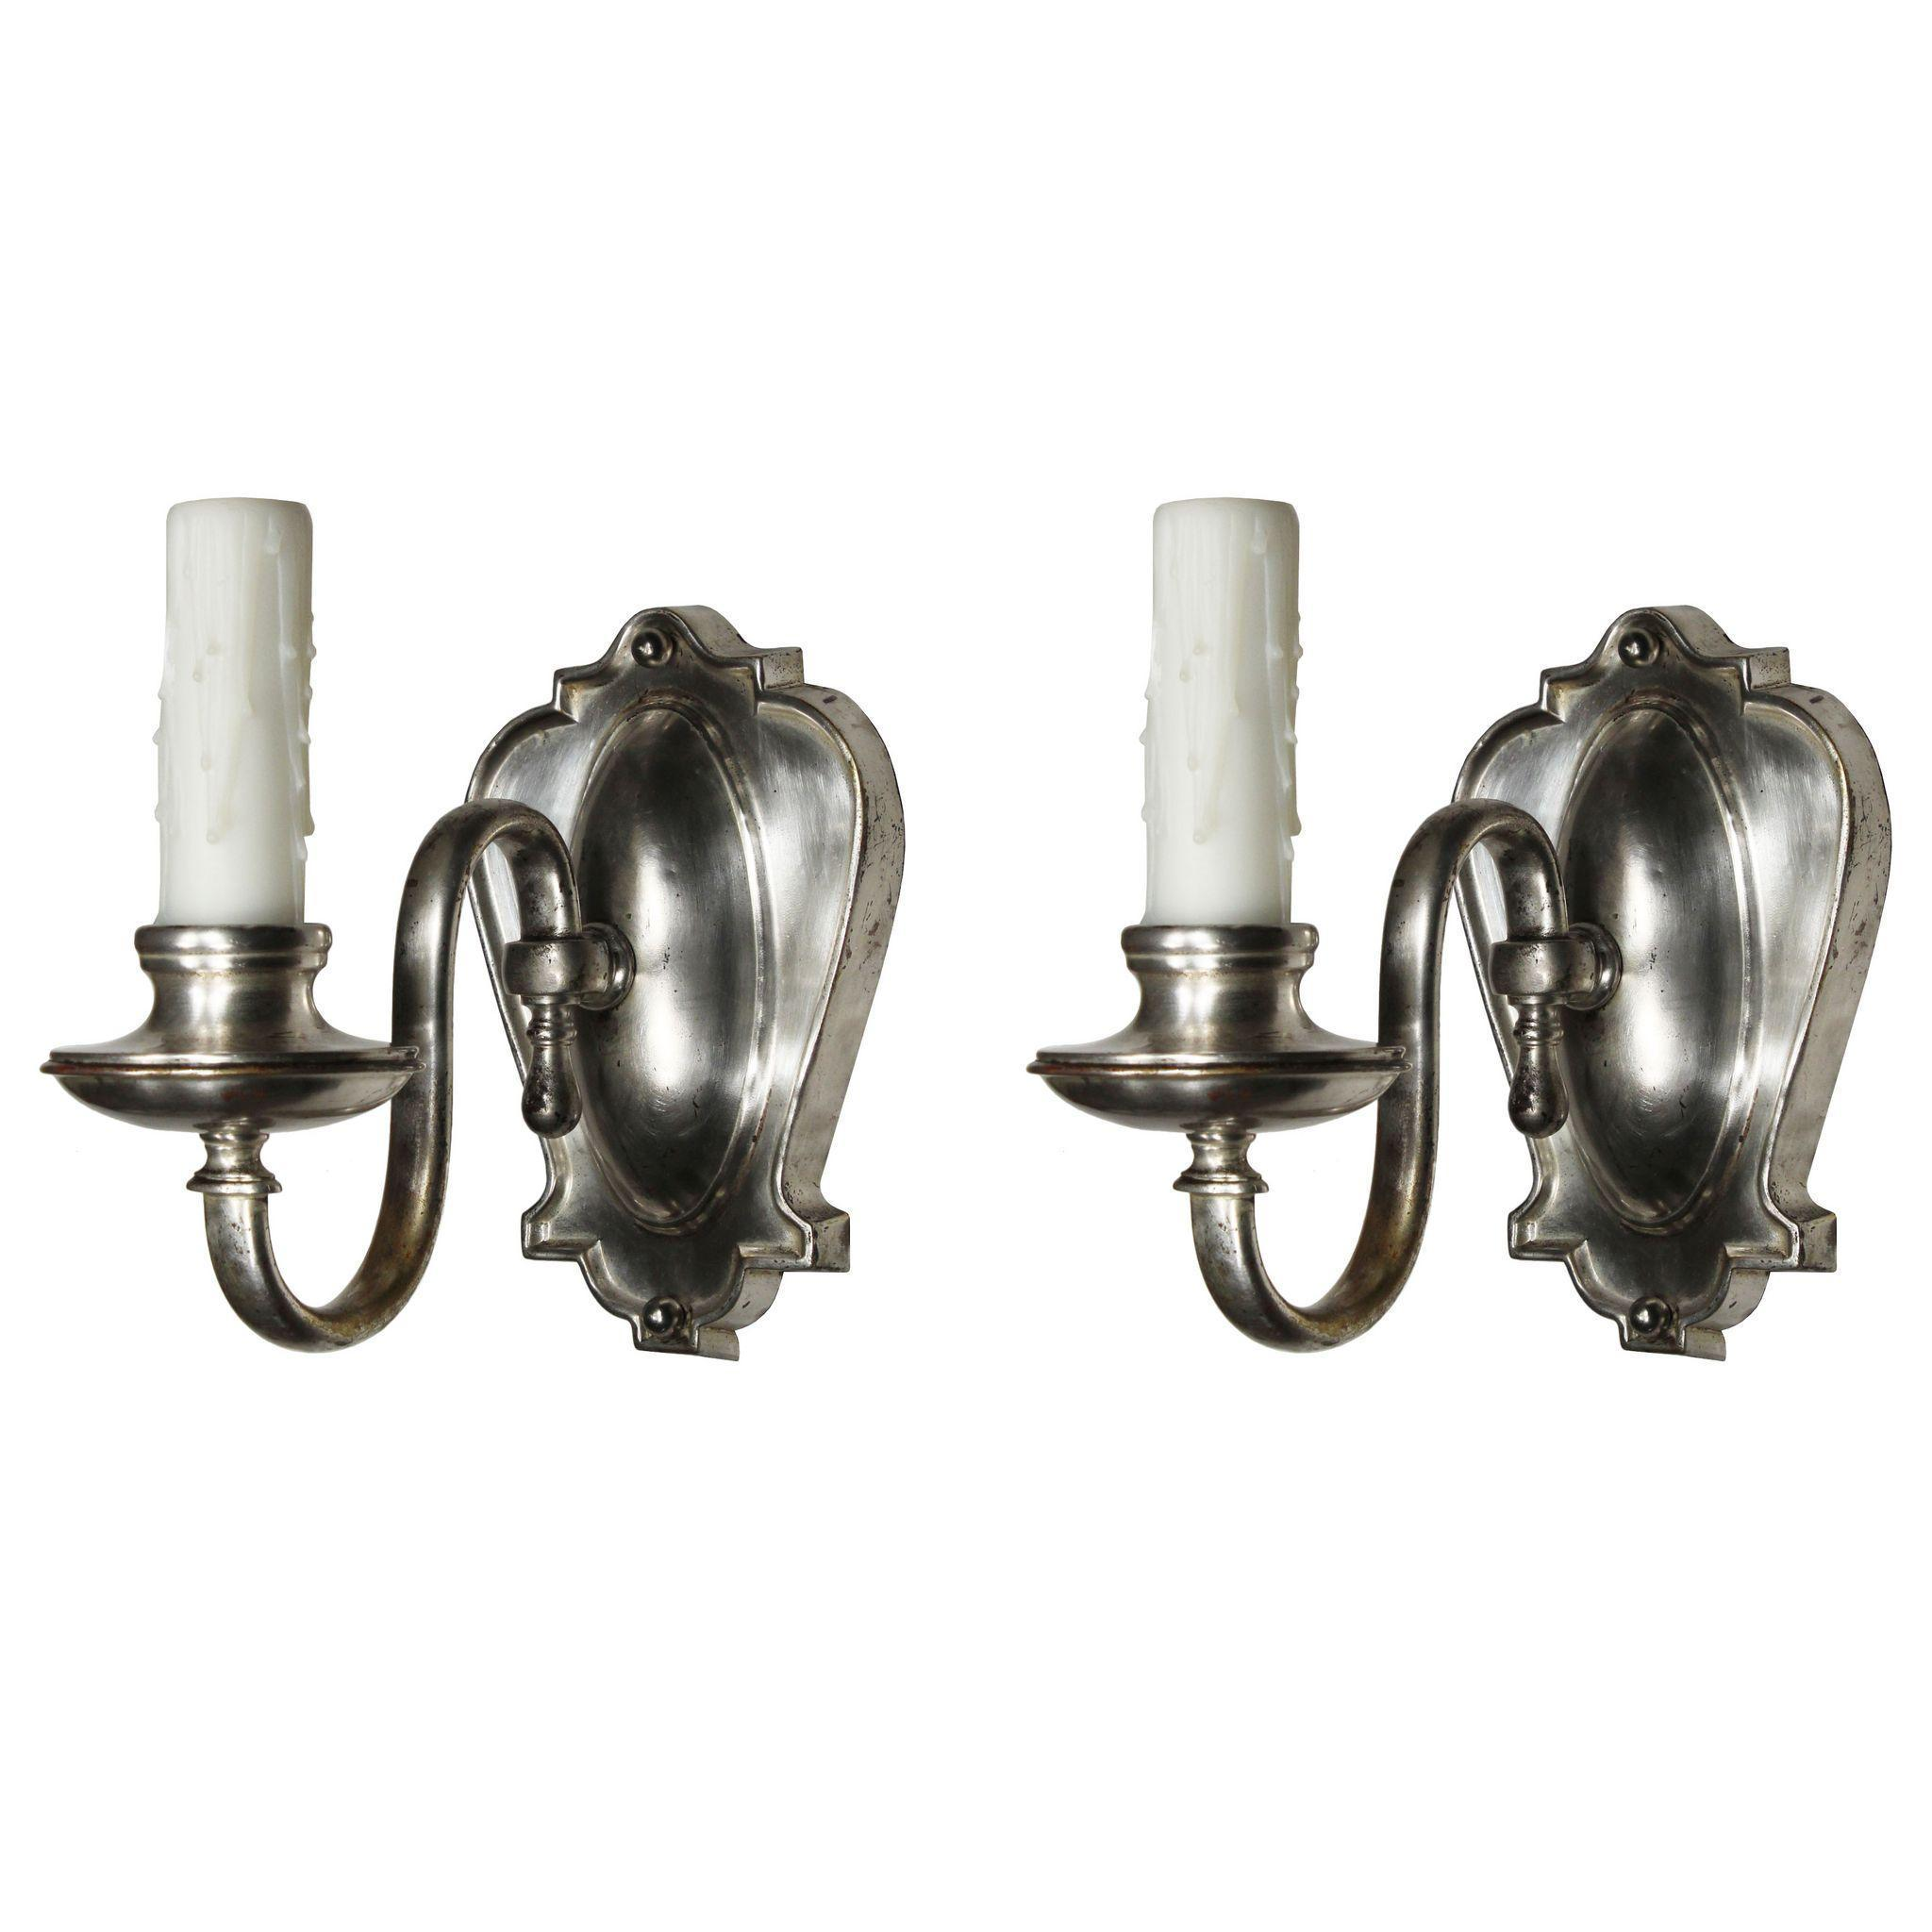 Antique Silver Plated Sconces, E.F. Caldwell